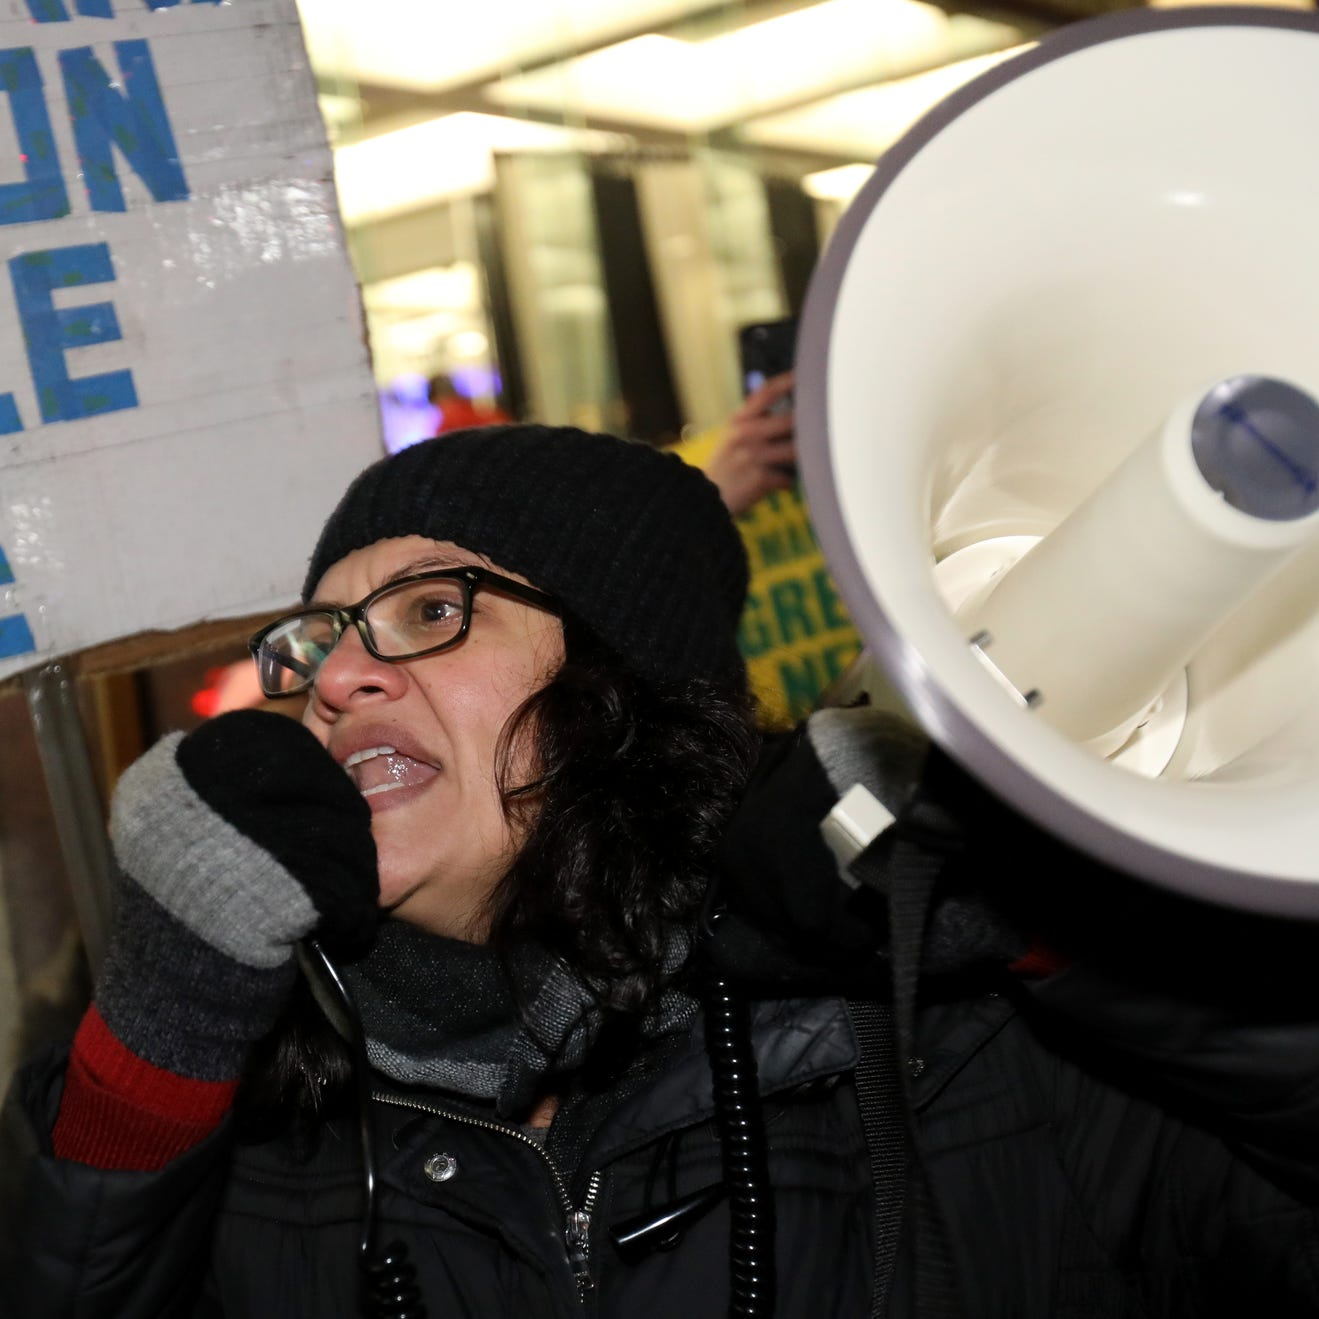 Rep. Tlaib to protesters: 'Let's march on, while they sip champagne'